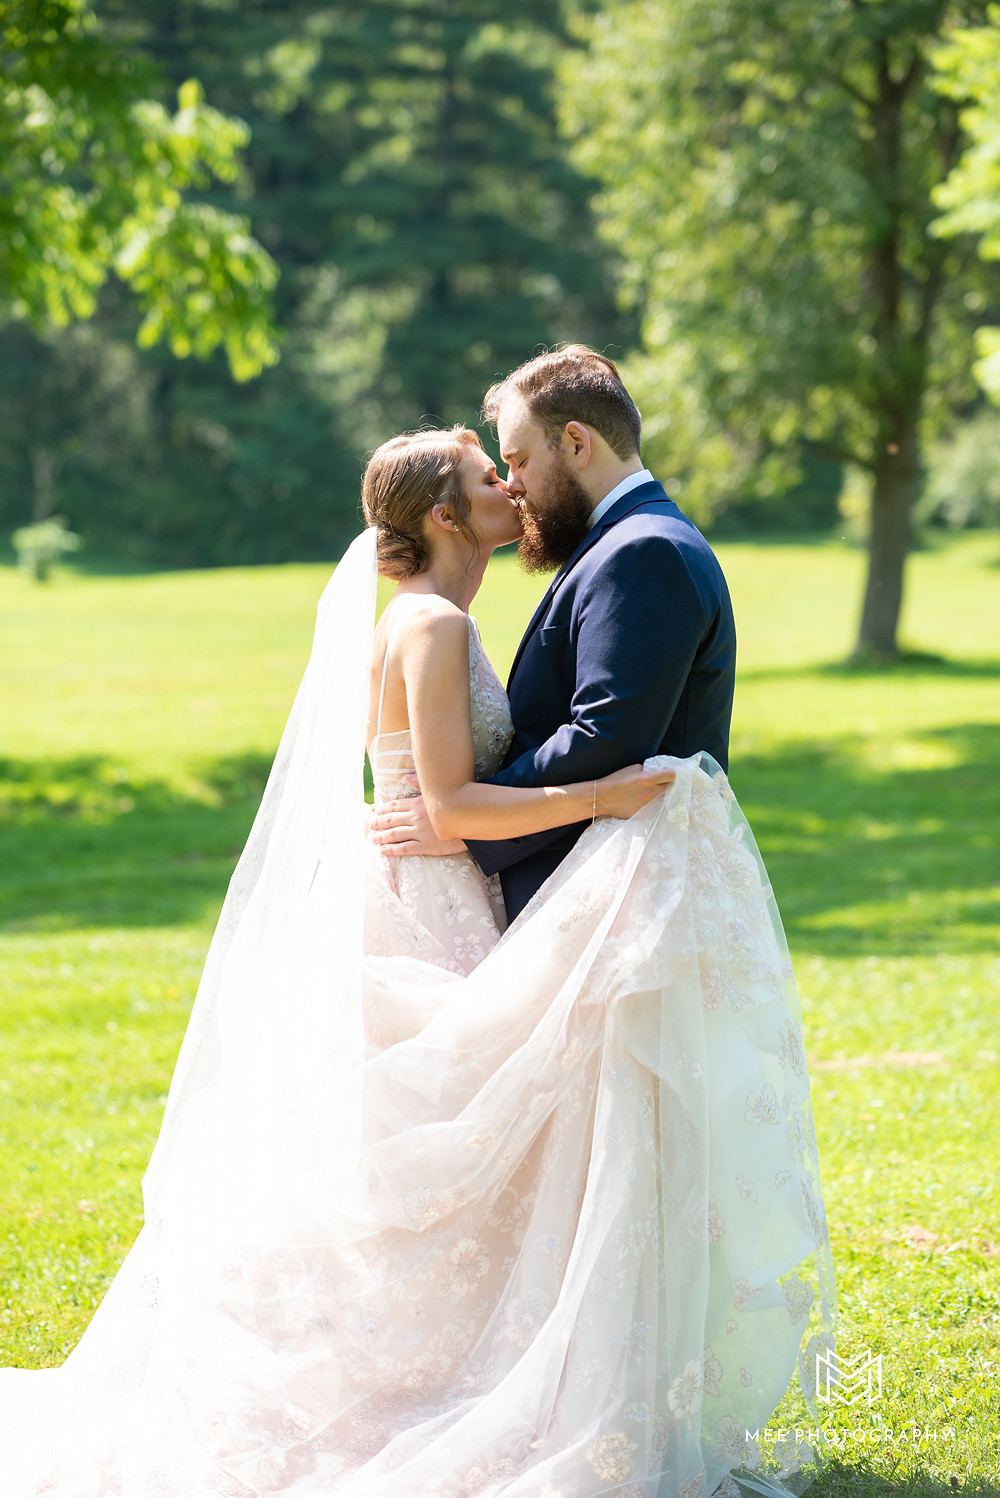 Bride and groom kissing during portraits at Chanteclaire Farm